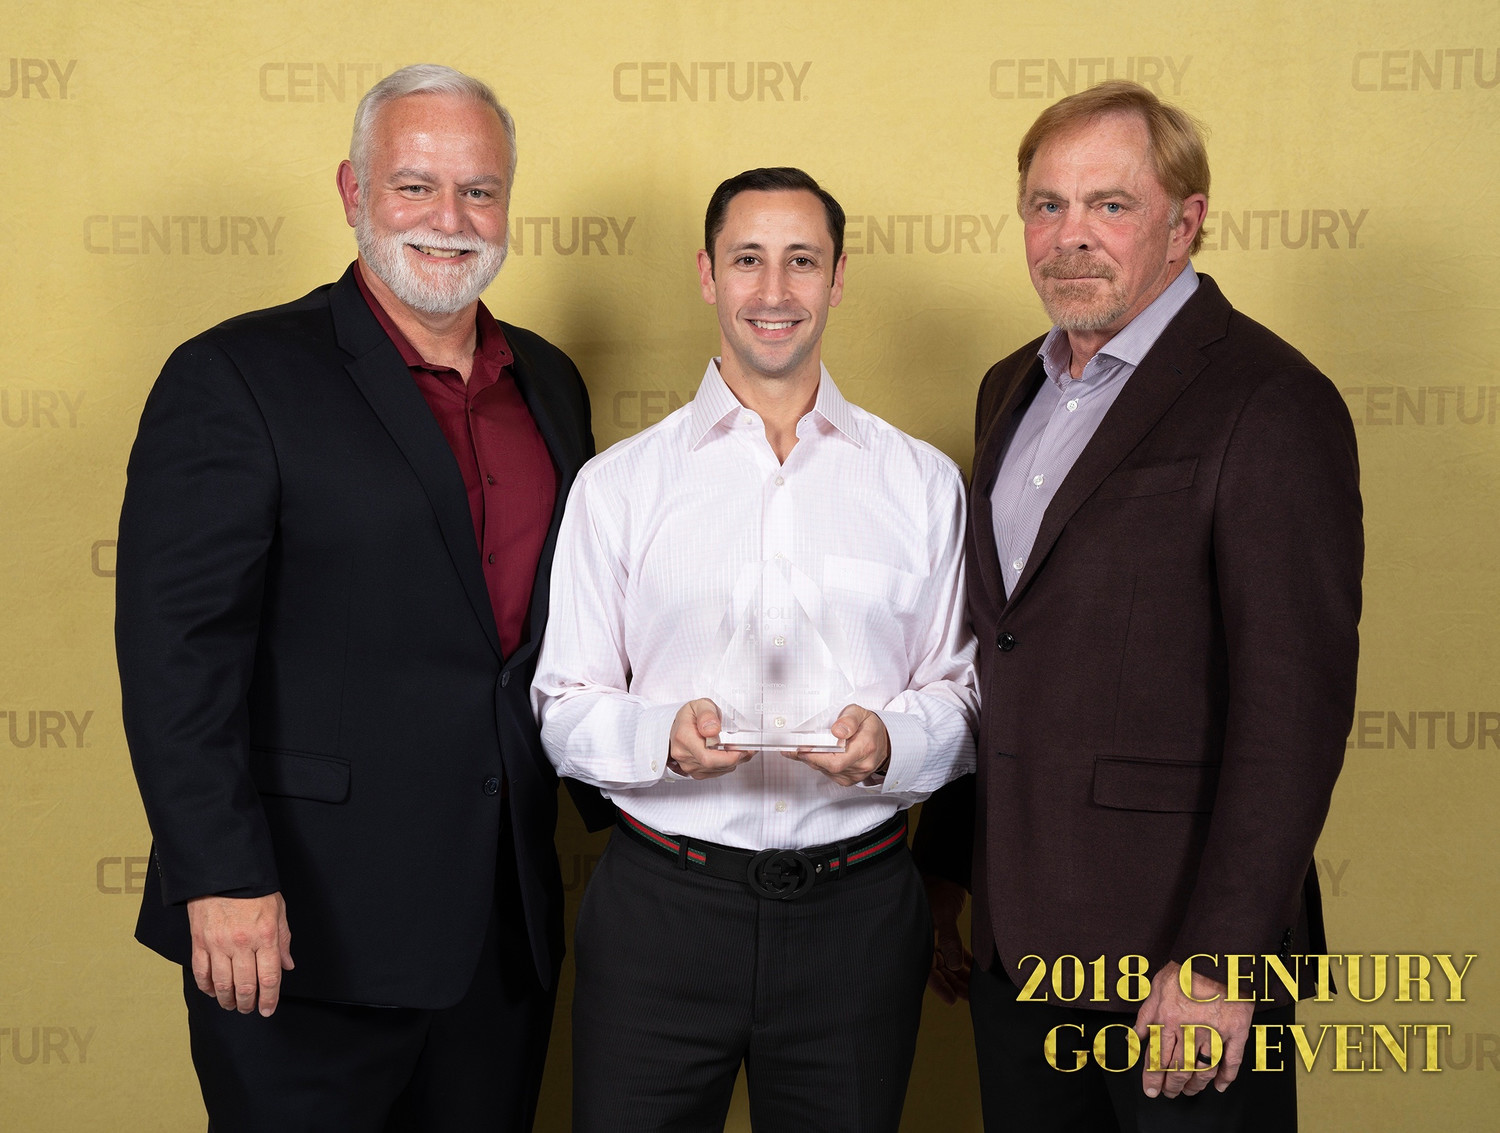 Industry recognition for Warren Levi Martial Arts & Fitness